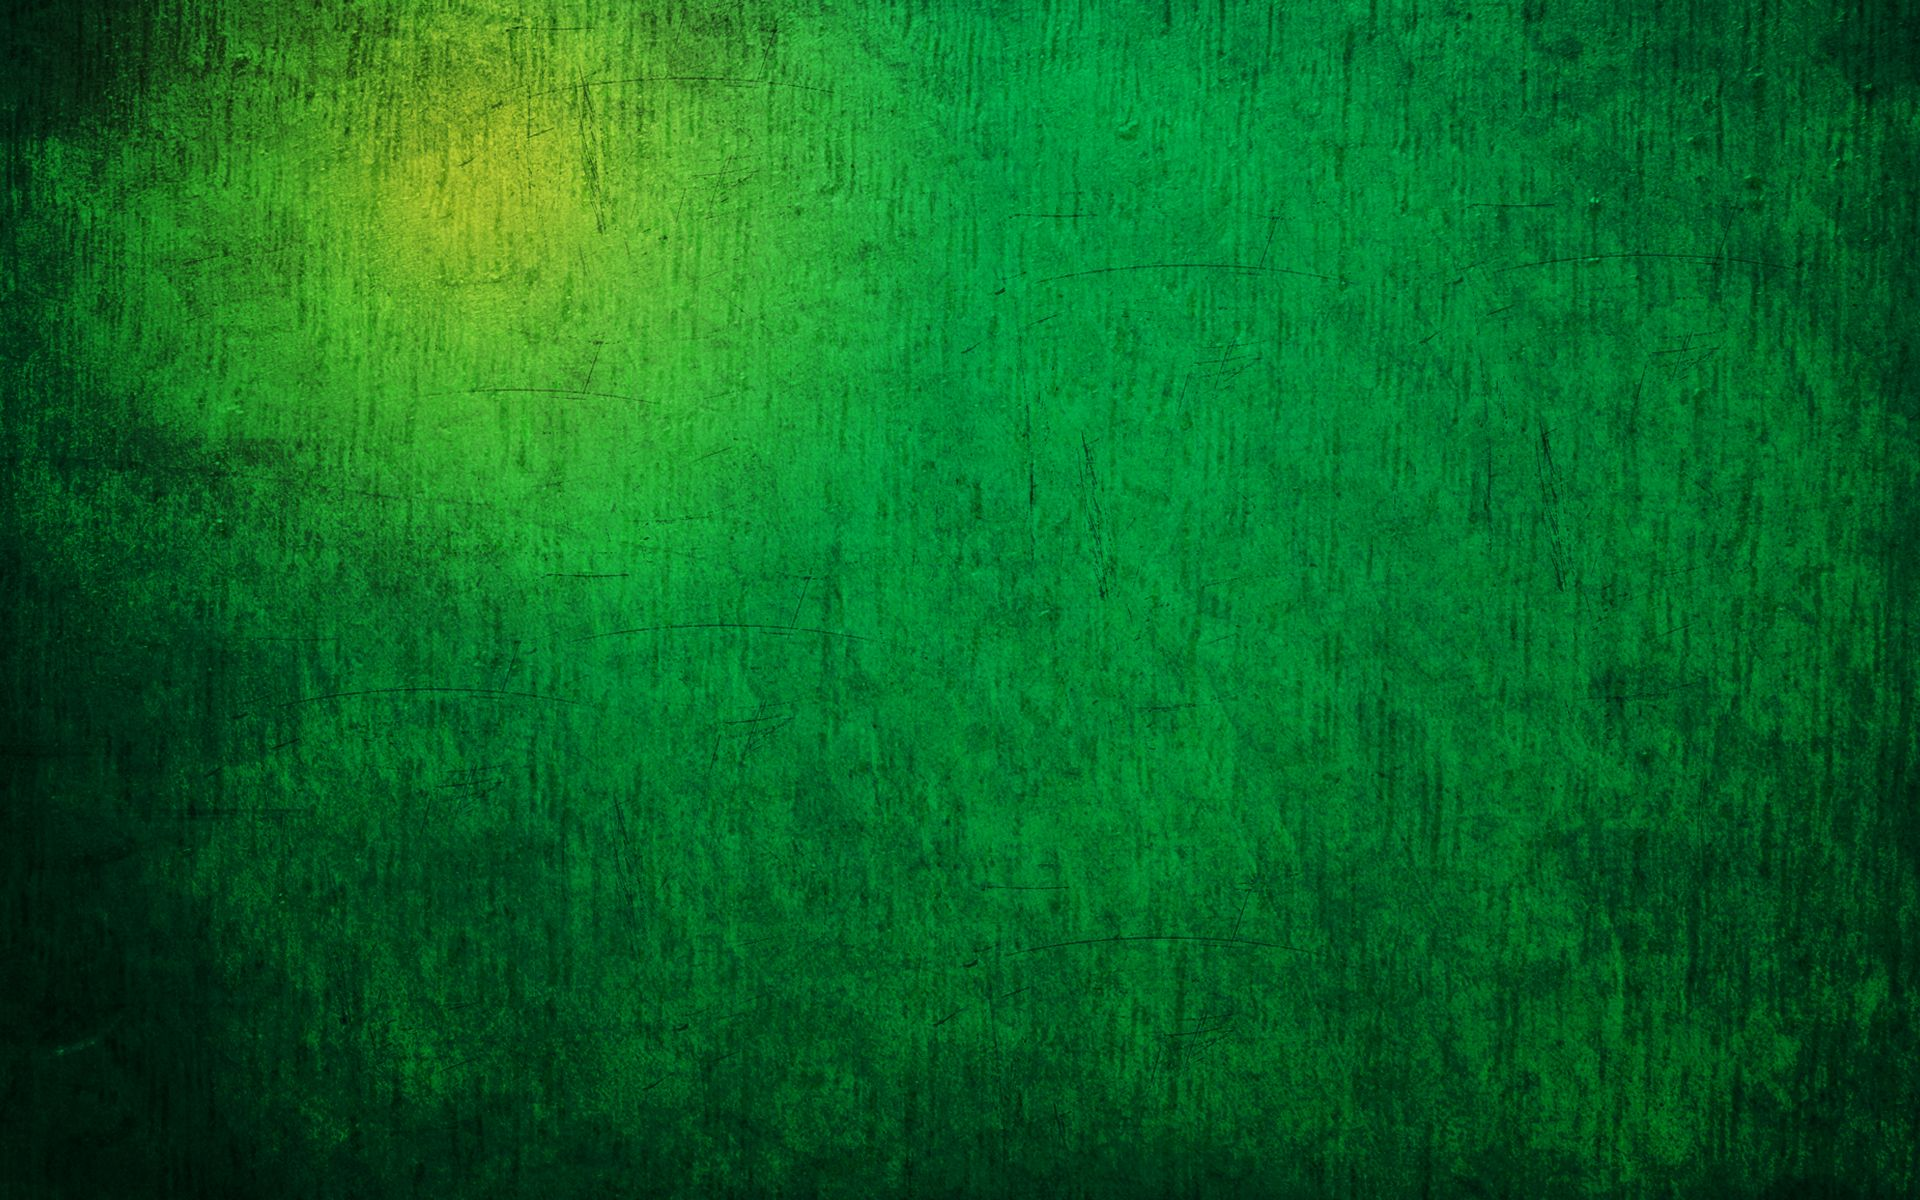 Green Background HD Desktop Wallpaper for K Ultra HD TV